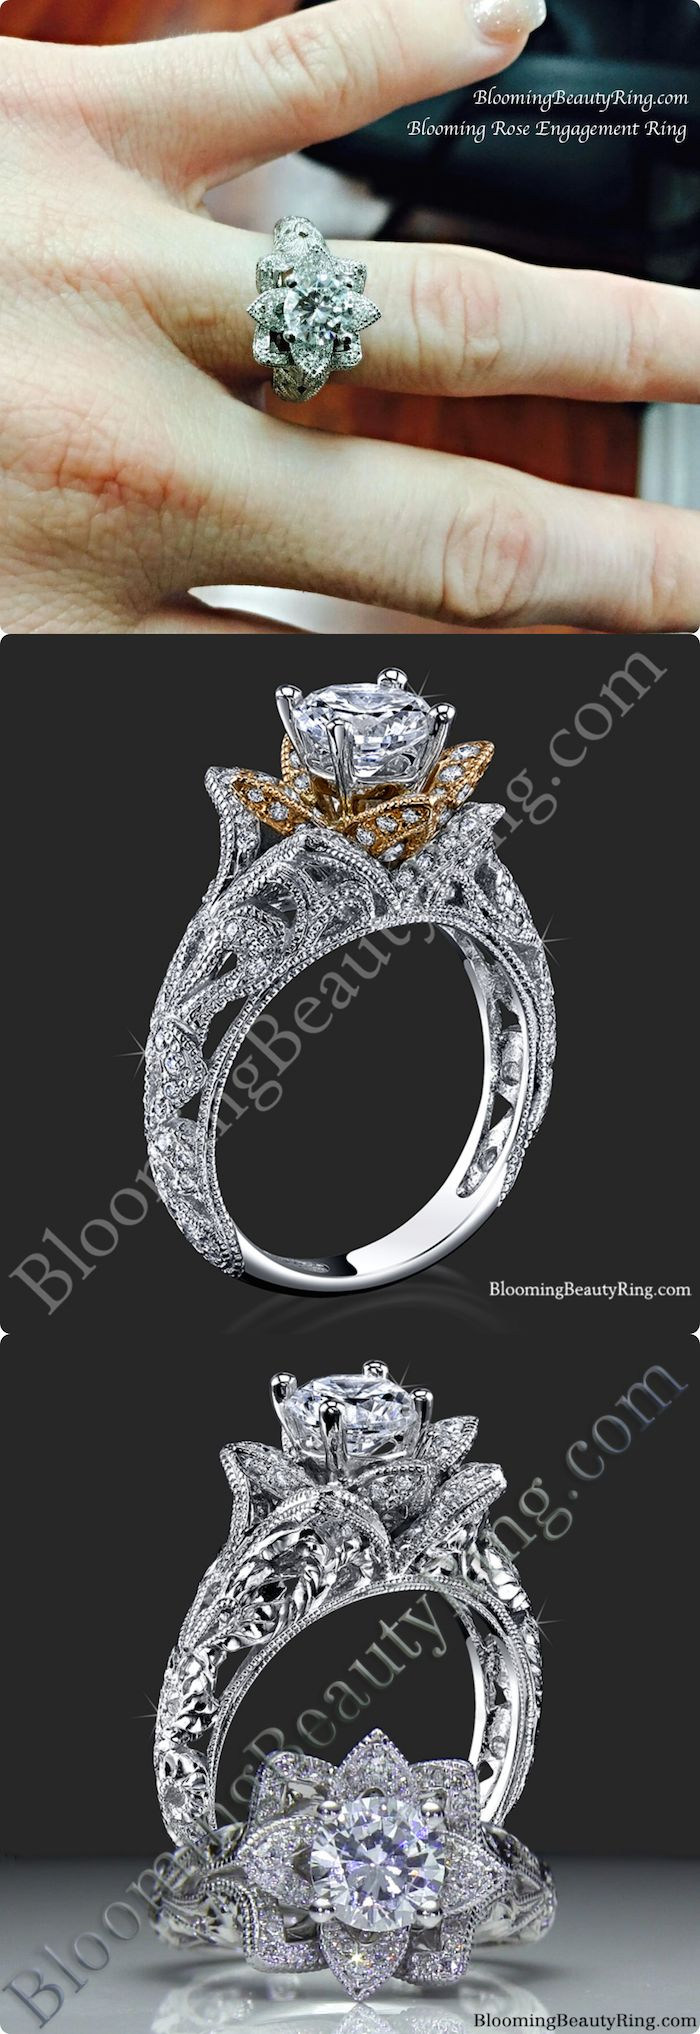 rose lotus wedding flower engraved ring rings engagement unique